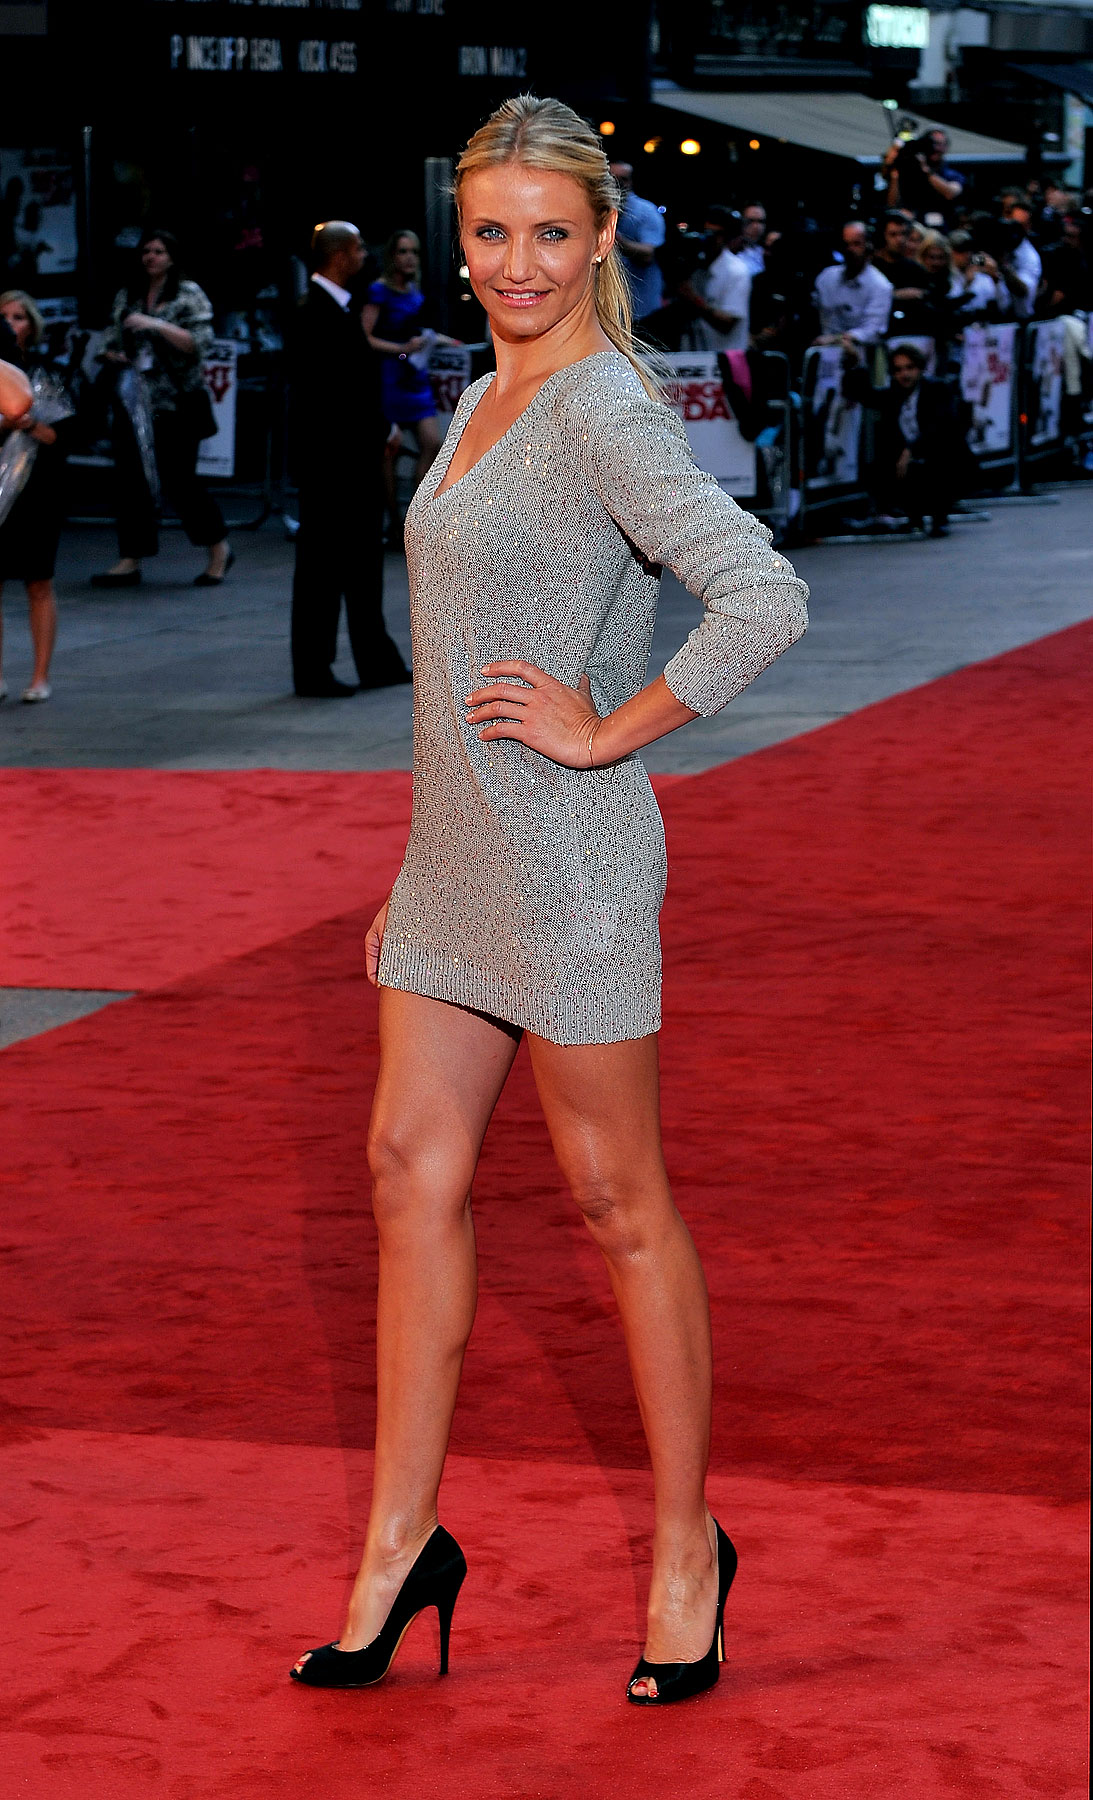 Cameron Diaz Sparkles at 'Knight and Day' Premiere (PHOTOS)